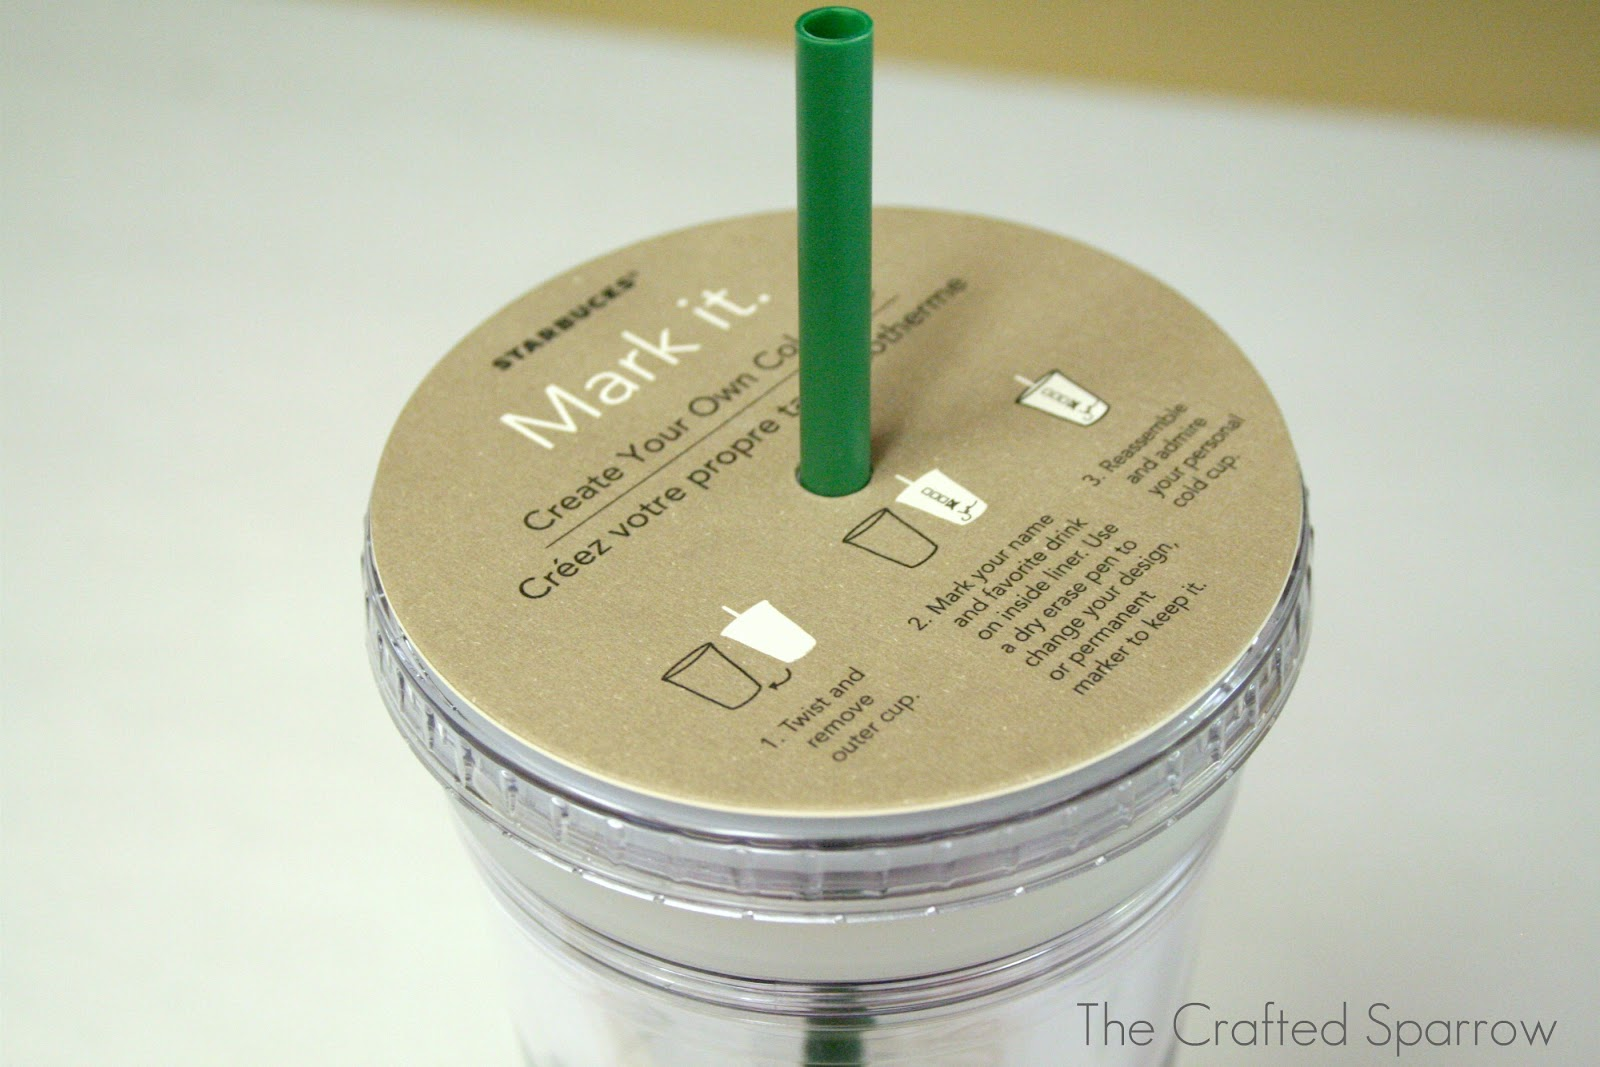 Diy glittered starbucks tumbler the crafted sparrow diy glittered starbucks tumbler pronofoot35fo Gallery